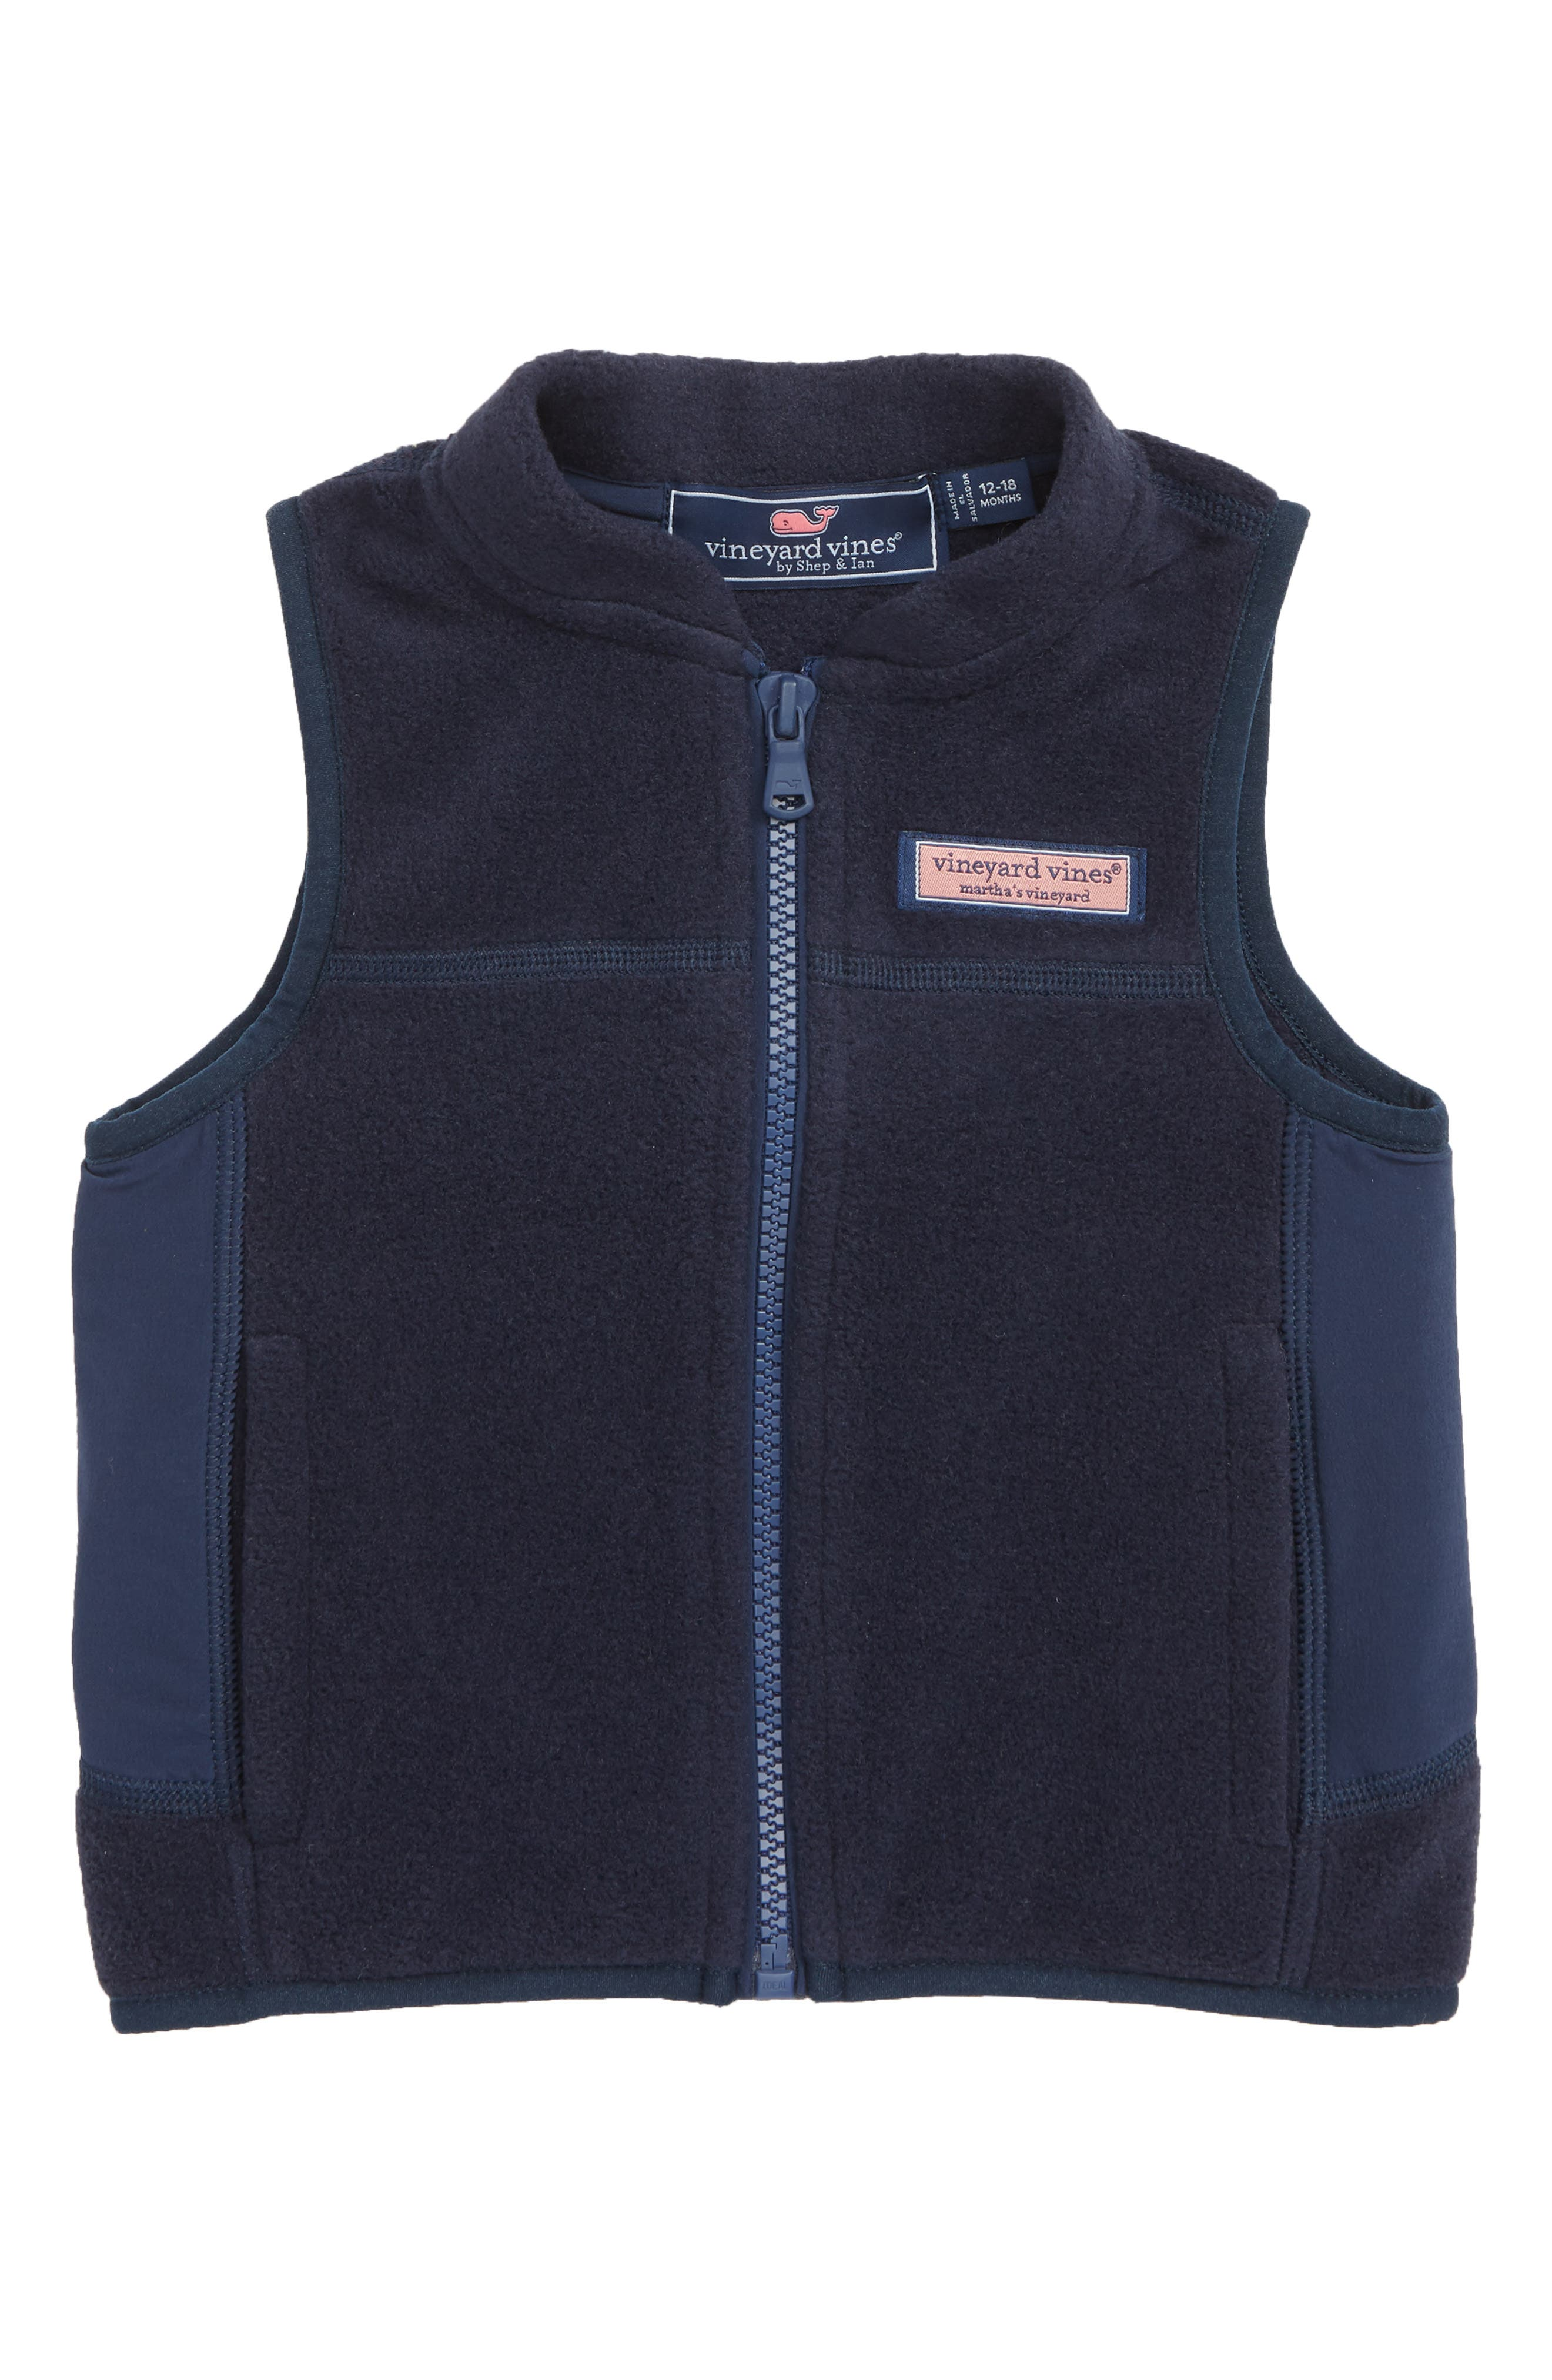 VINEYARD VINES, Harbor Fleece Vest, Main thumbnail 1, color, VINEYARD NAVY